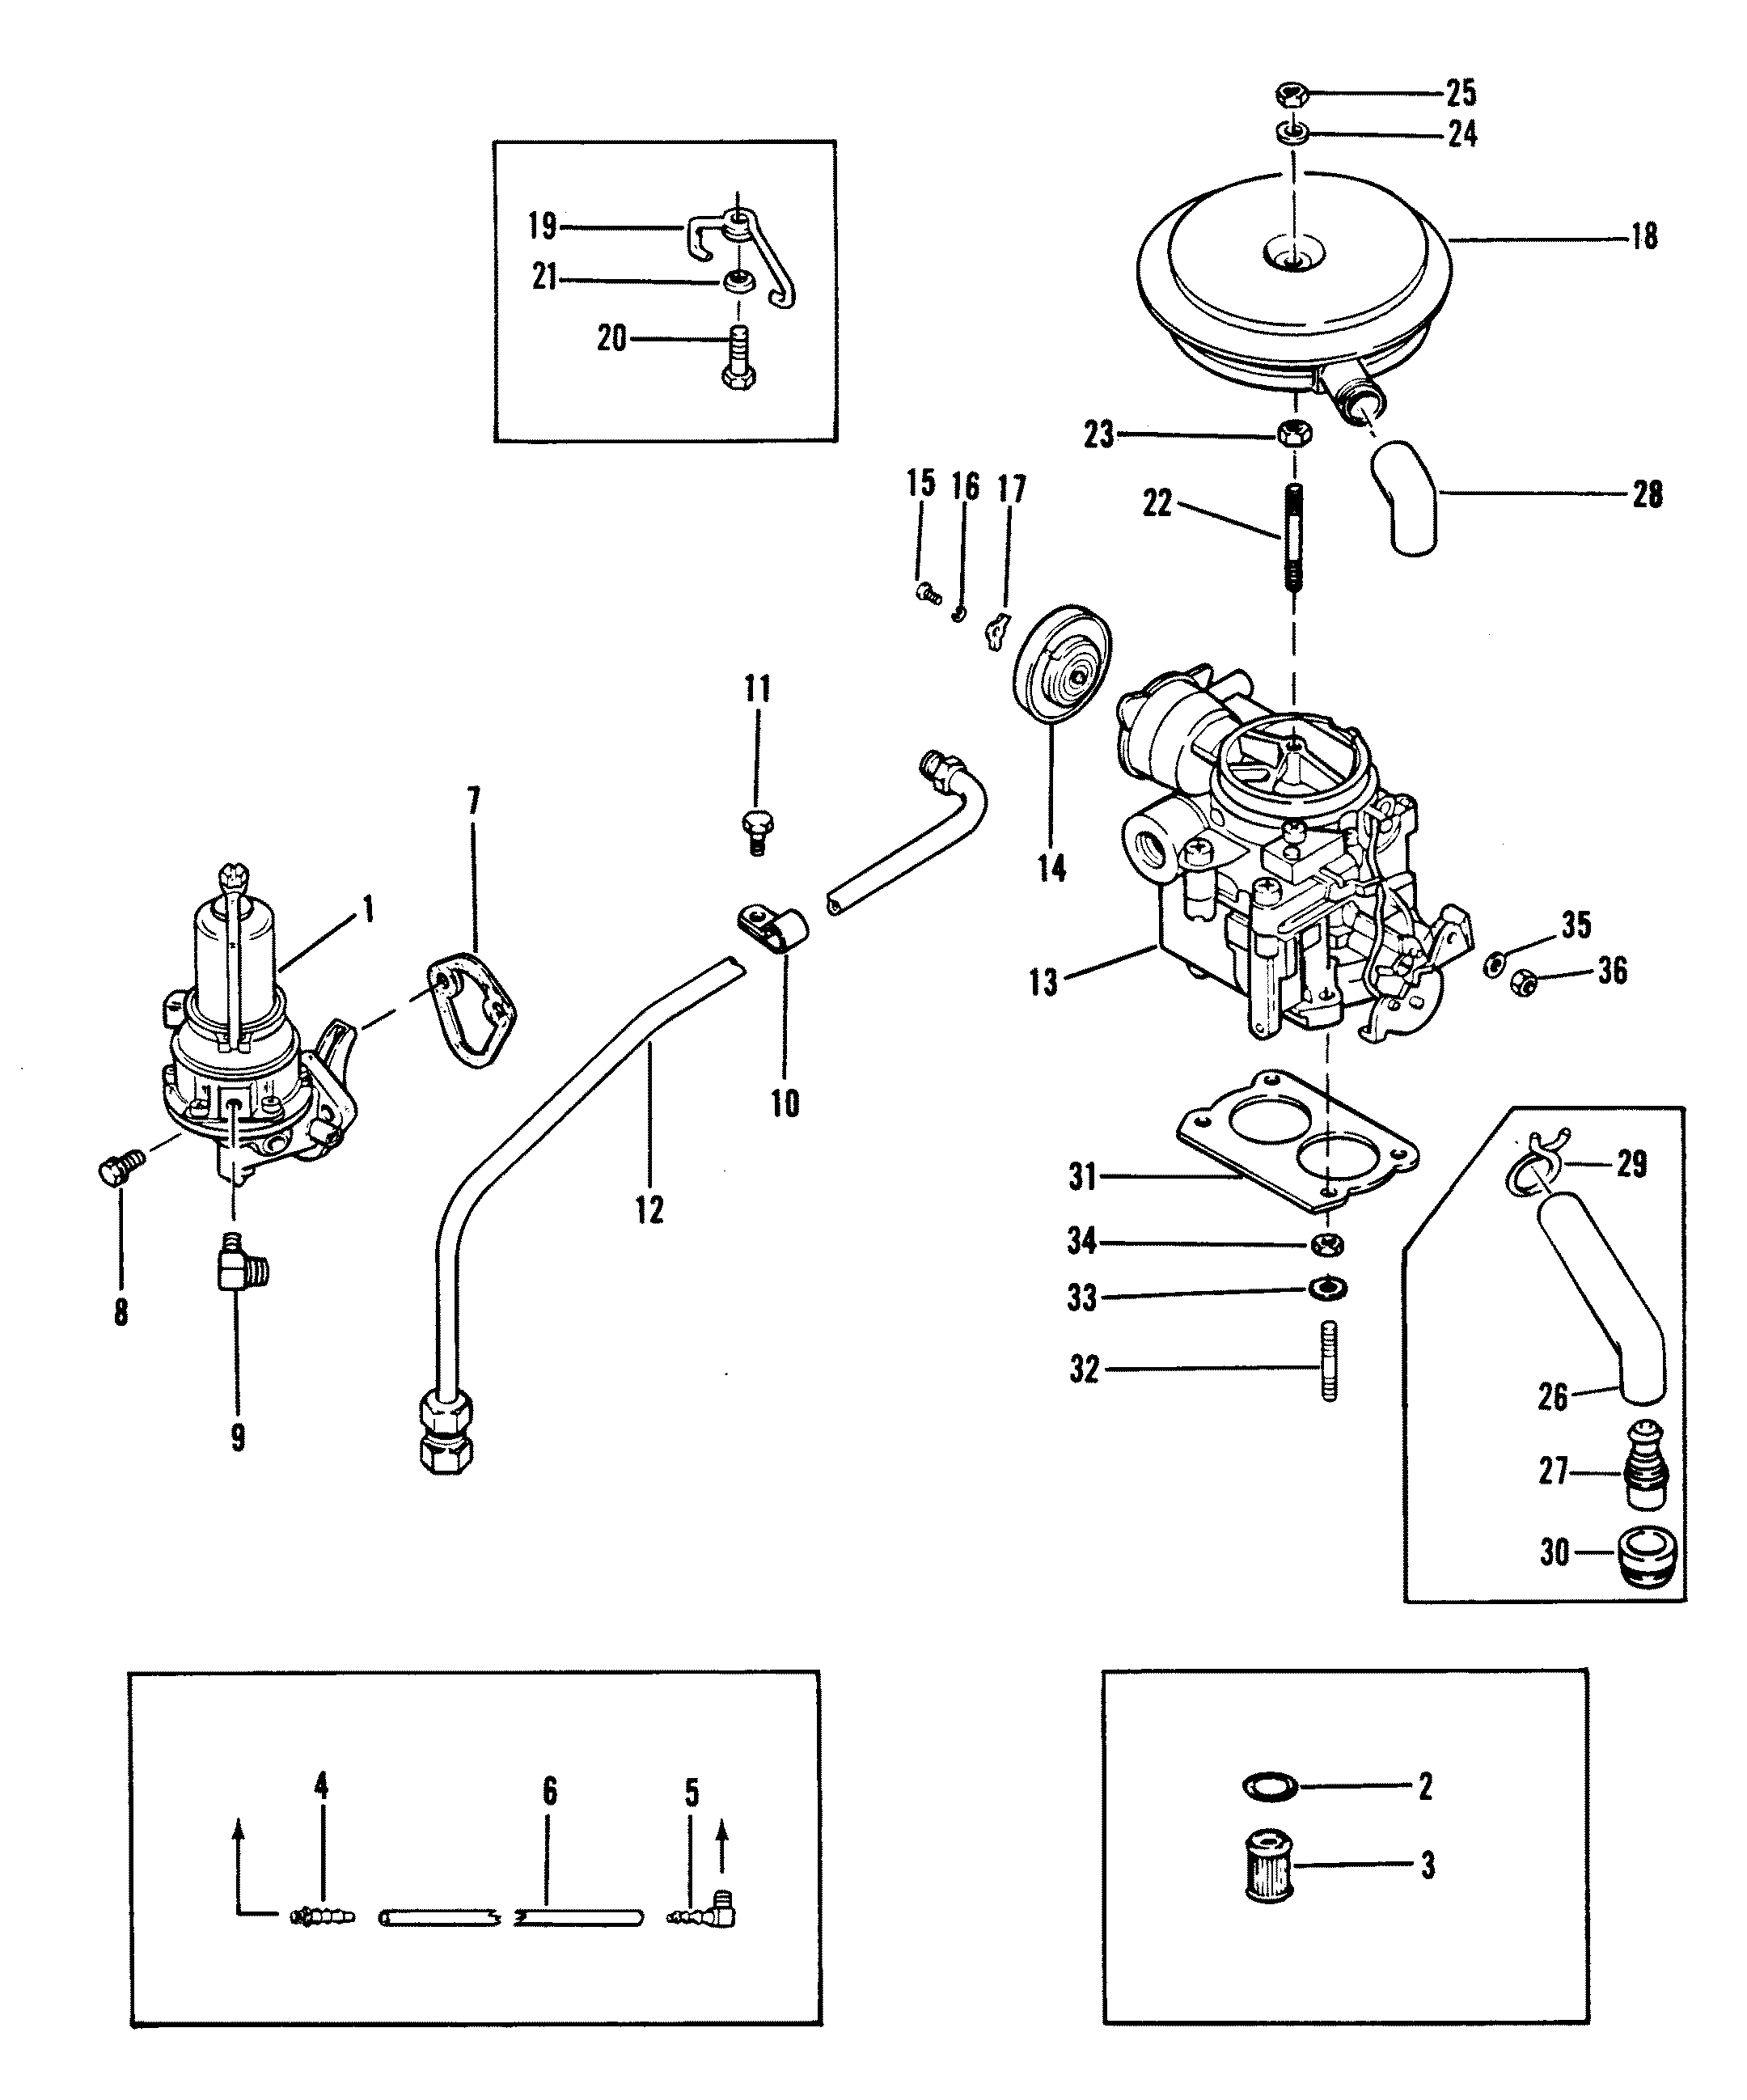 КатаРог запчастей mercruiser остаРьные 140 gm 181 i l4 1982 1986 fuel pump and carburetor old design